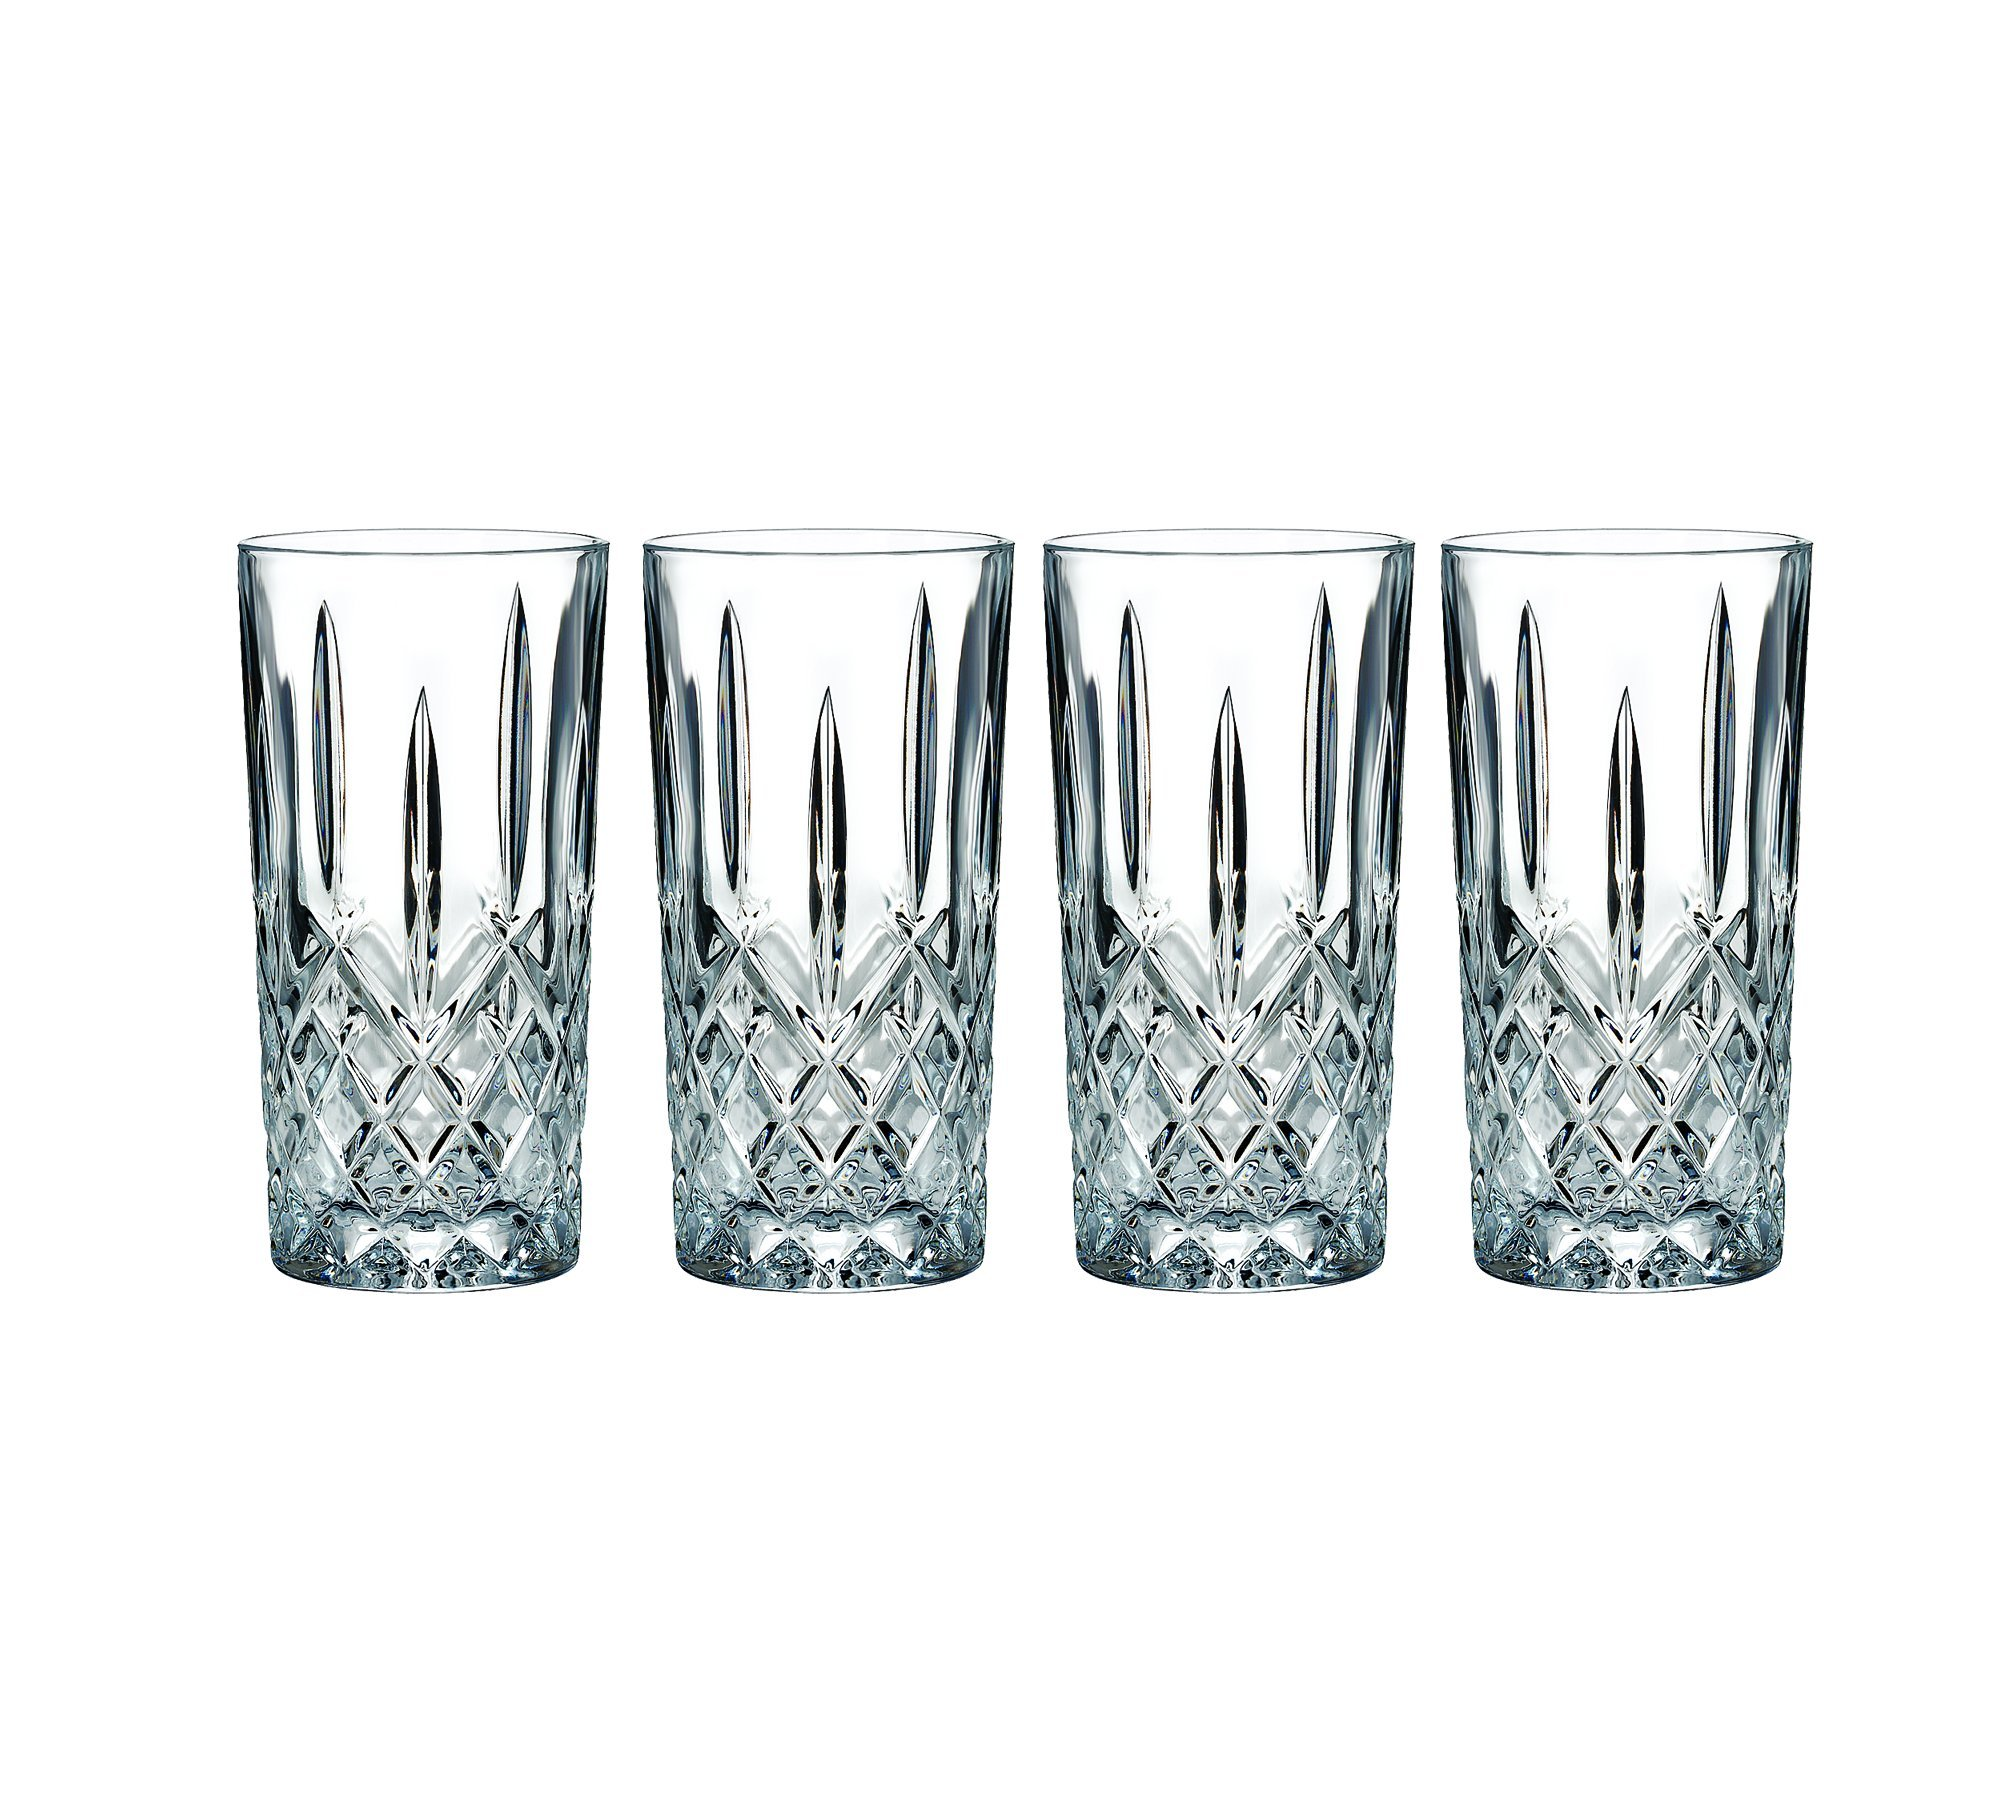 Marquis by Waterford 165119 Markham Hiball Collins Glasses, Set of 4 by Marquis By Waterford